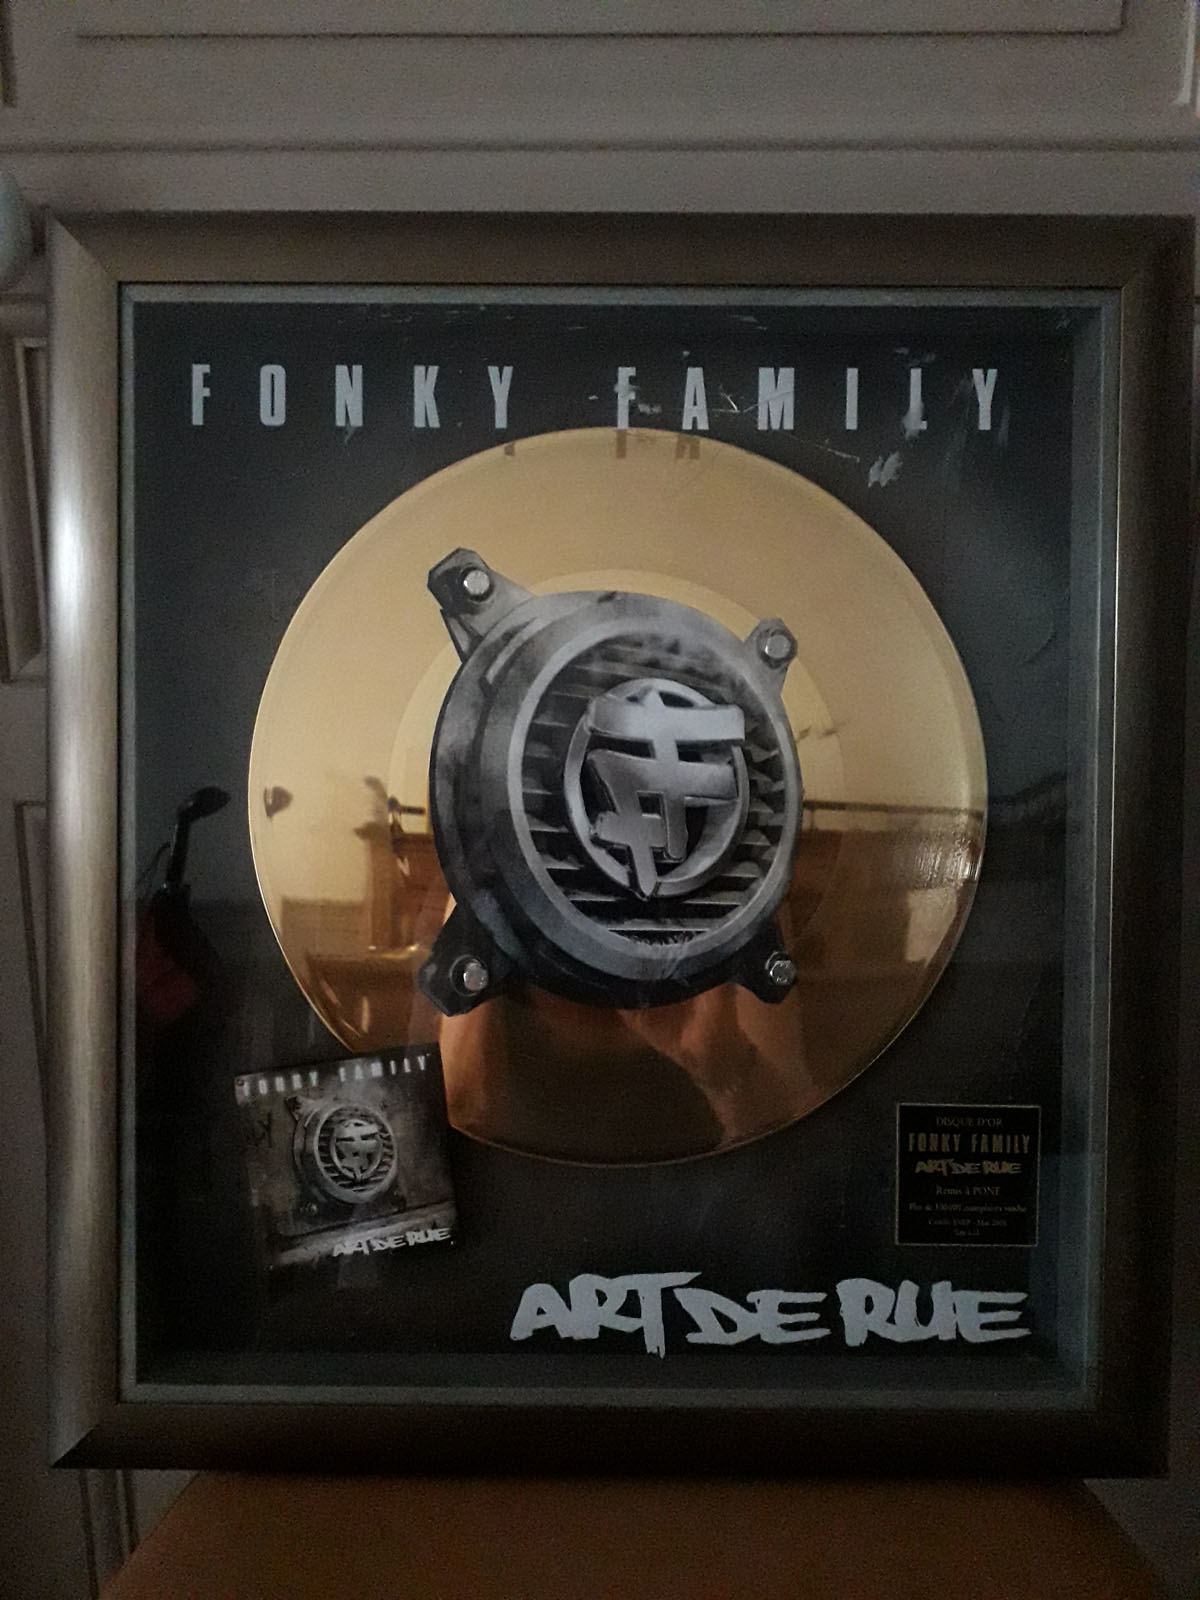 Disque d'or FONKY FAMILY ART DE RUE